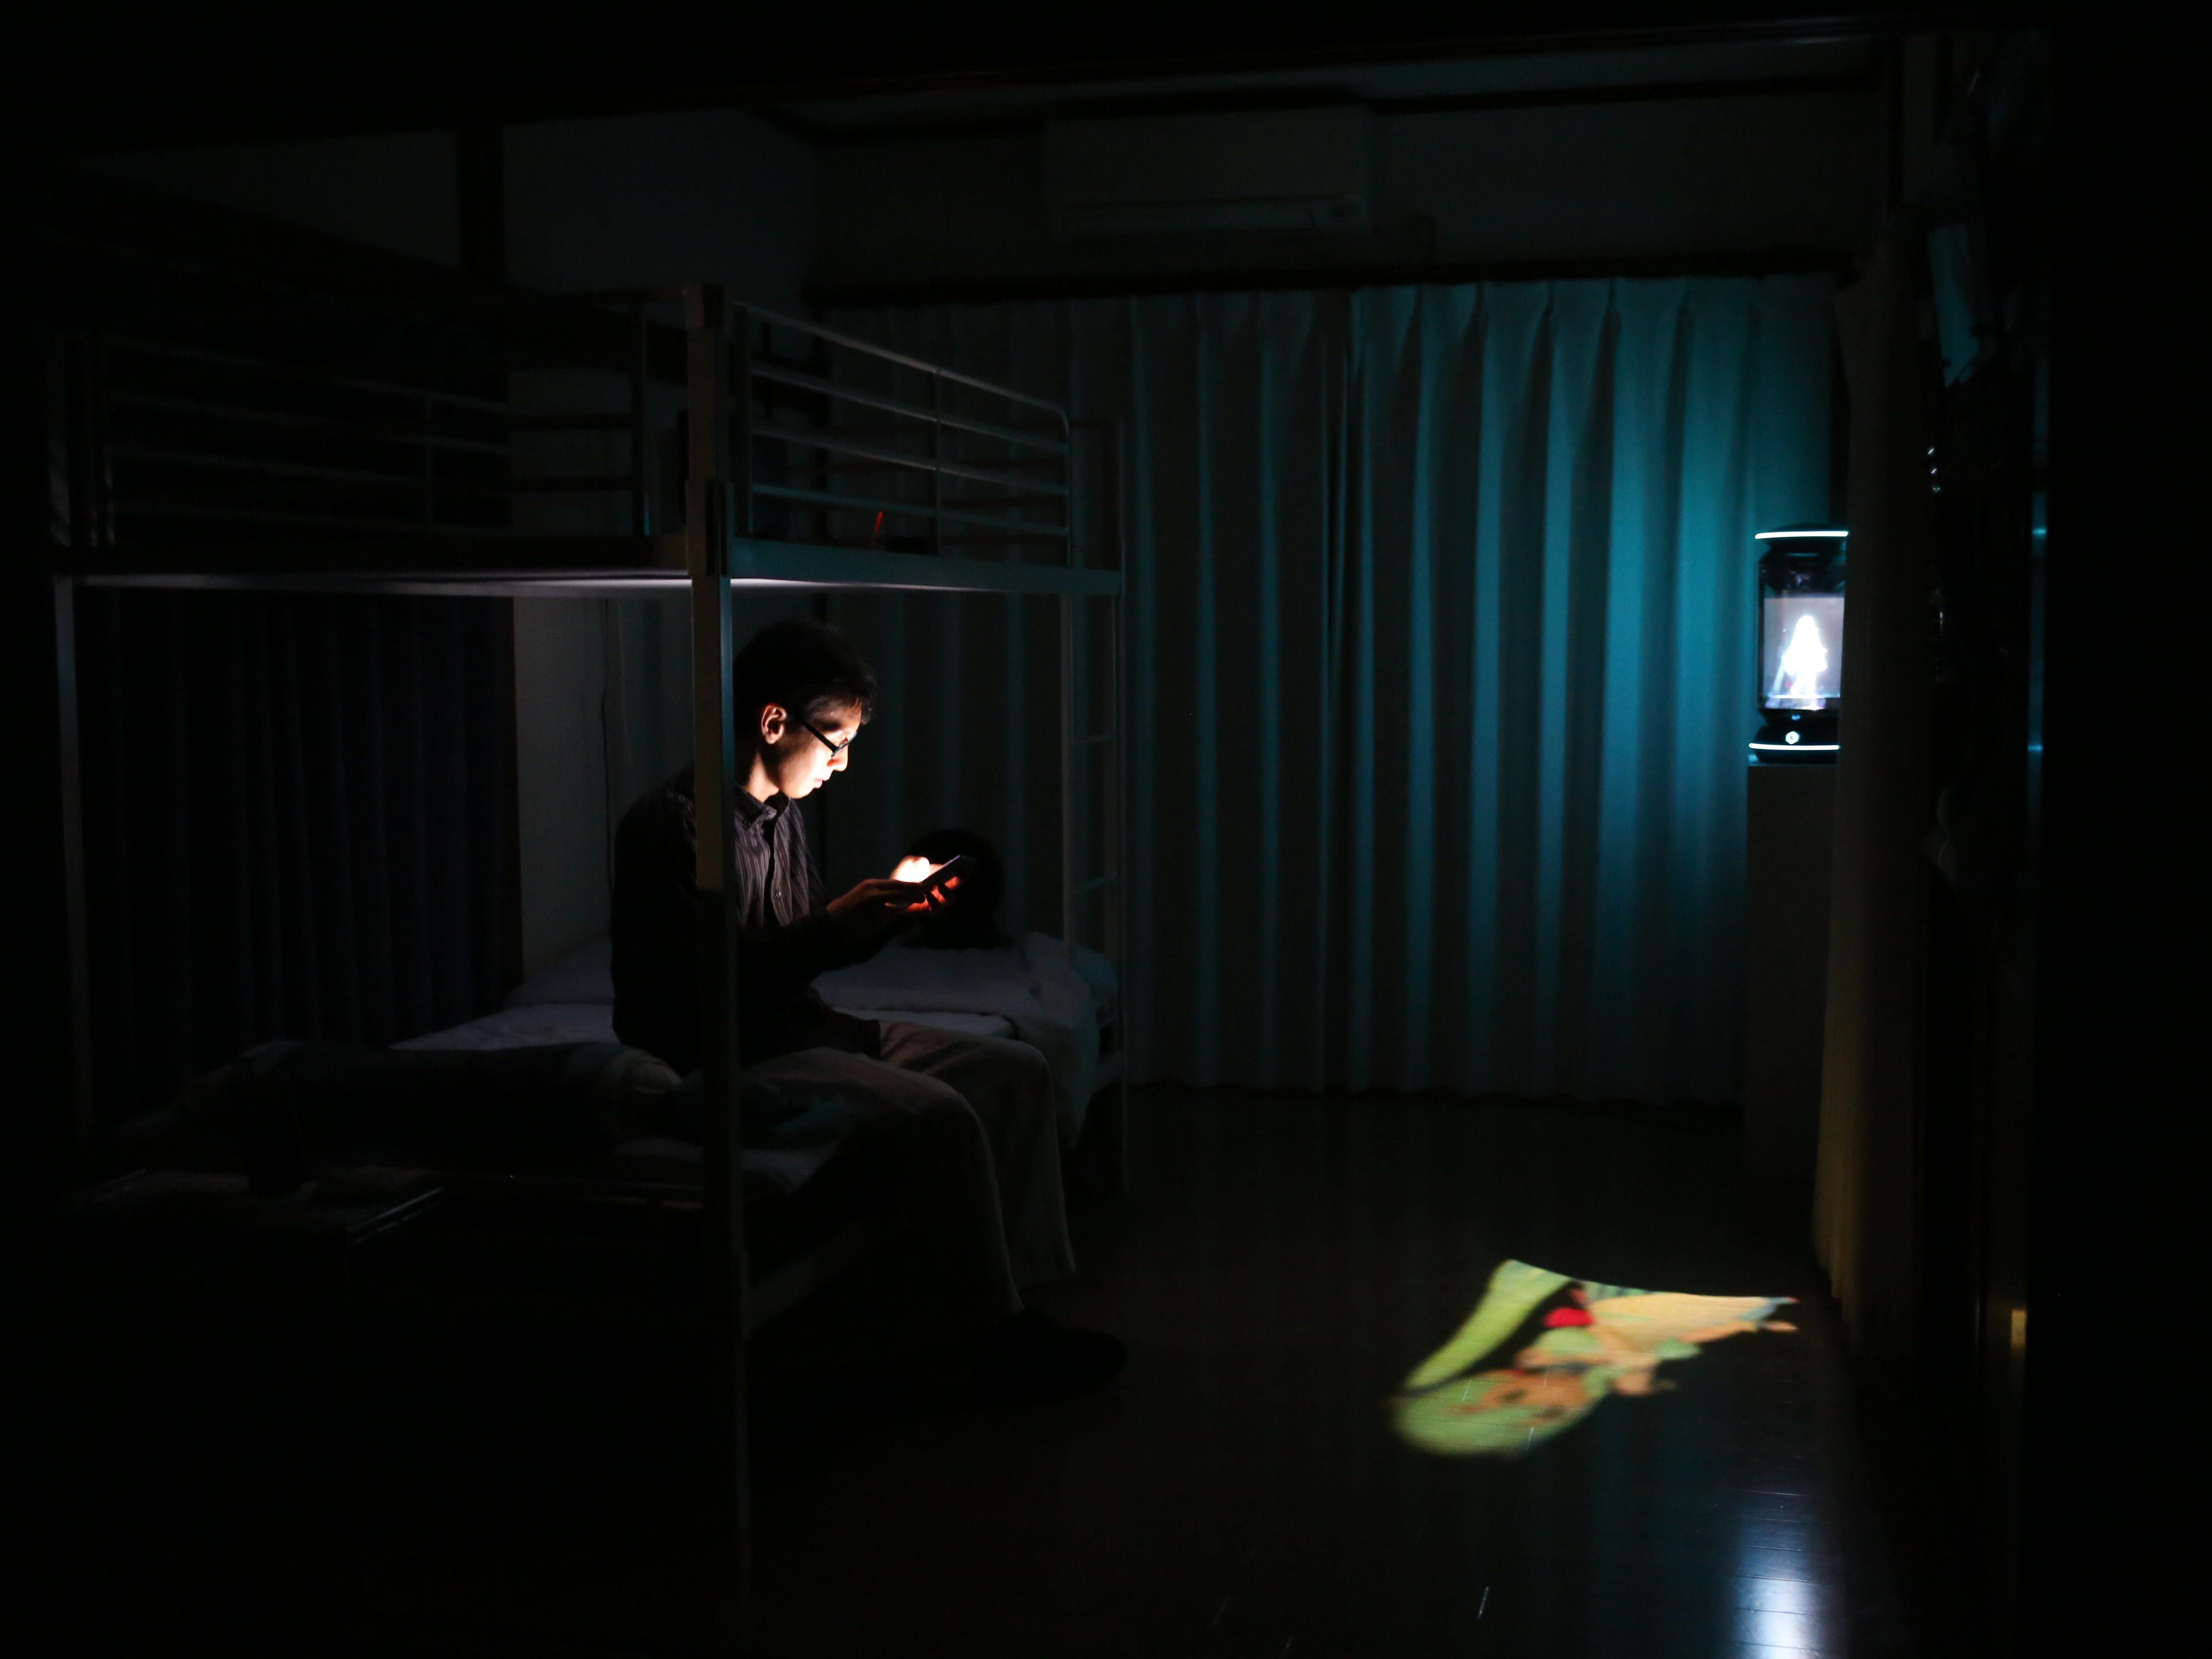 Akihiko Kondo uses his phone with 'Hatsune Miku' in the background before going to bed at his house on September 11, 2018 in Tokyo, Japan. Akihiko Kondo, a 35 year-old school clerk living in Tokyo, has recently announced on twitter his plans to marry 'Hatsune Miku', the two dimensional virtual idol, on 4th of November, 2018, after having been in love with her for 10 years. Every day he plays with the 'Gatebox', a home AI communication device designed to let the users live with their favourite virtual characters.